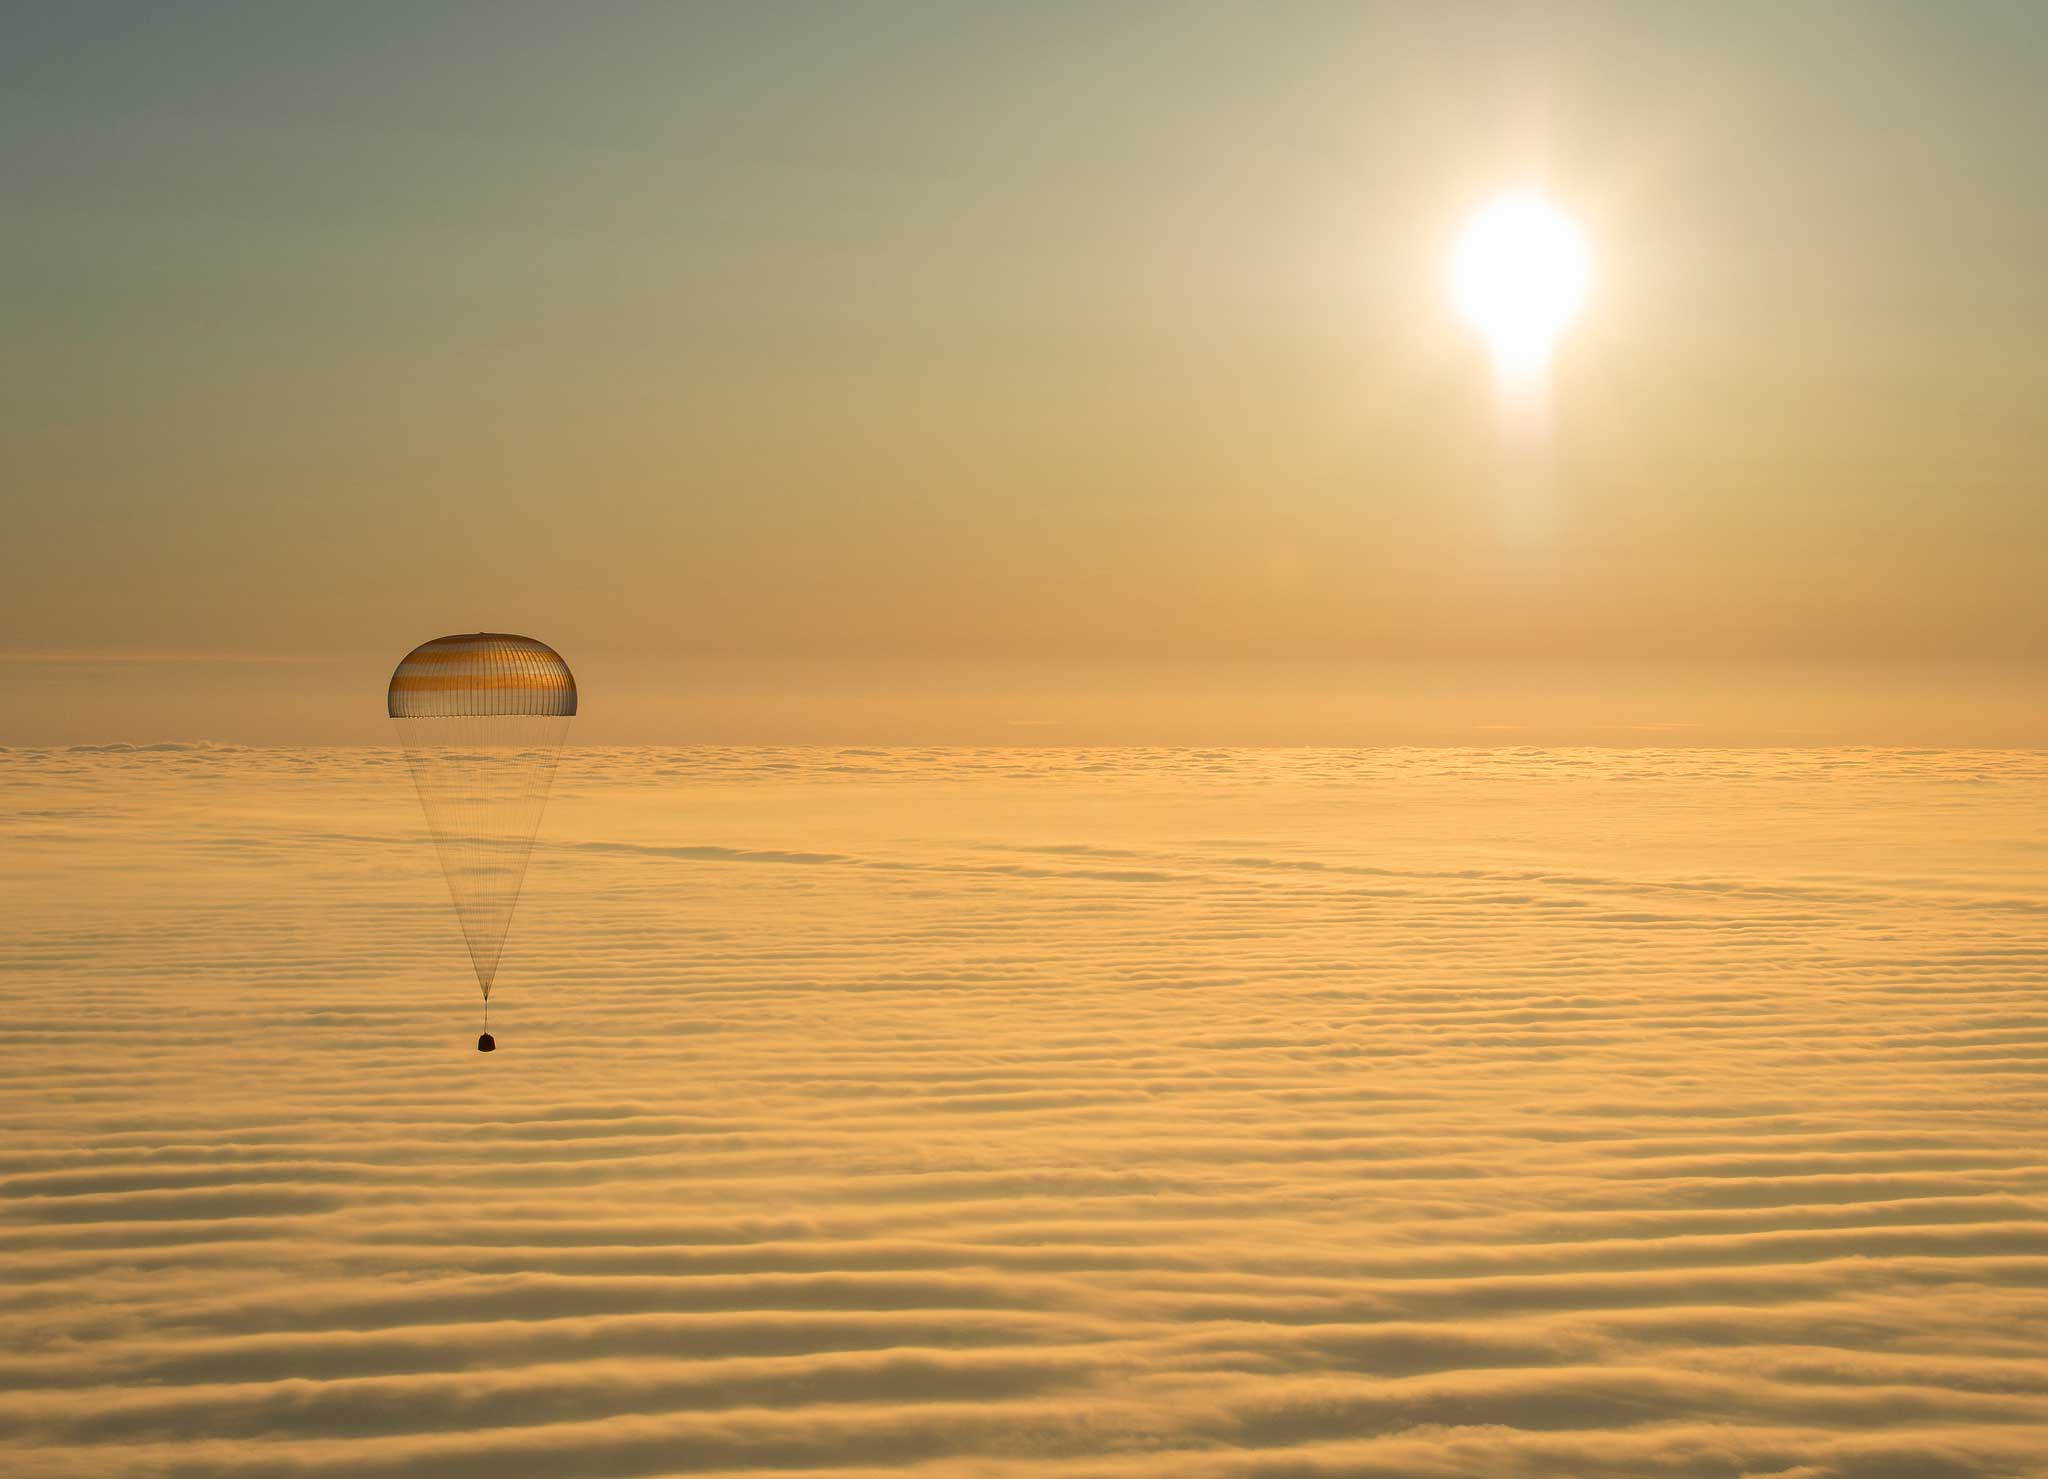 A Soyuz spacecraft is seen as it returns home with NASA astronaut Barry Wilmore and Russian cosmonauts Alexander Samokutyaev and Elena Serova of Roscosmos, near the town of Zhezkazgan, Kazakhstan on March 12, 2015.